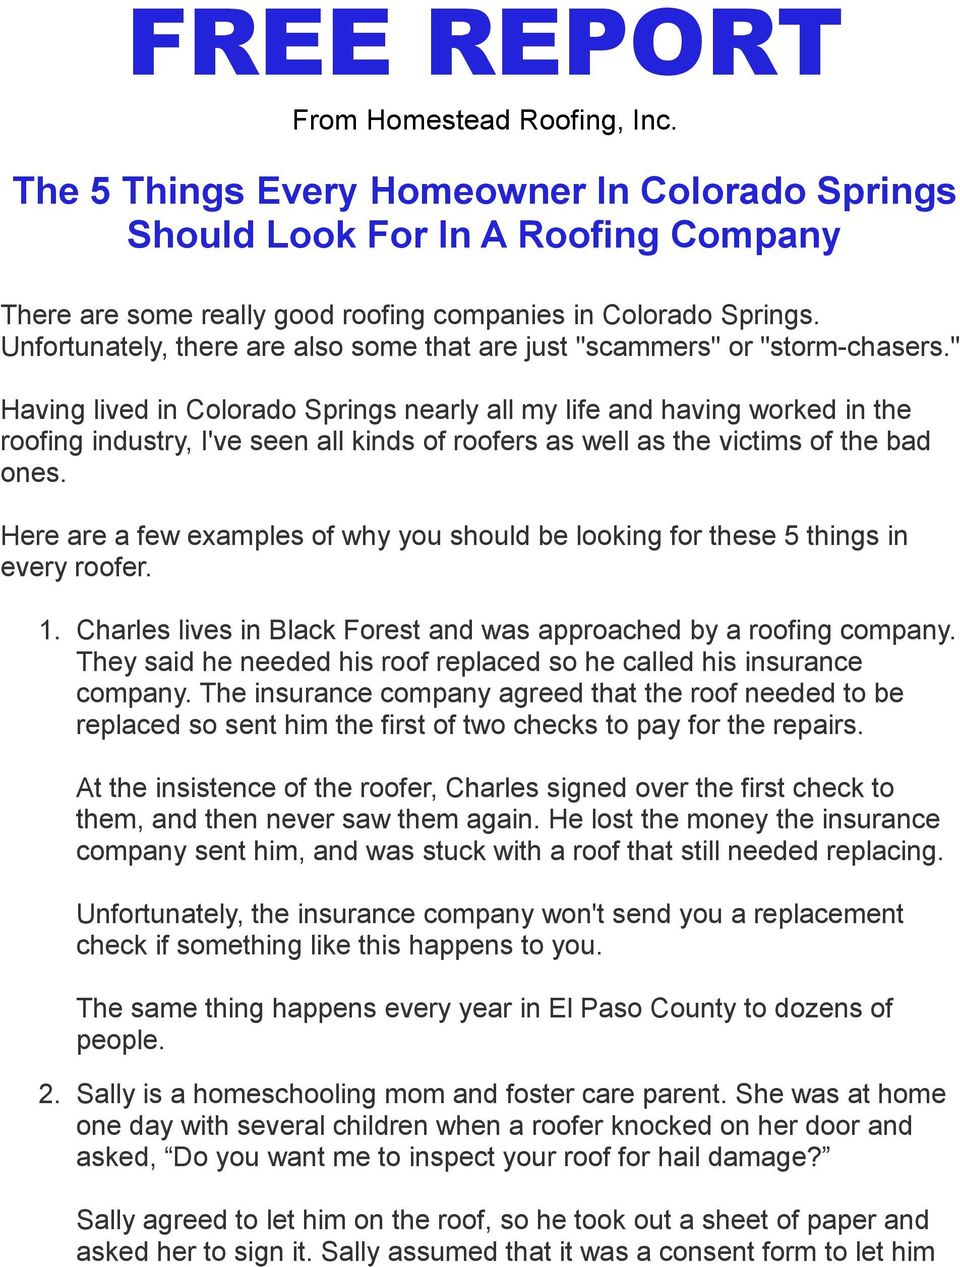 """ Having lived in Colorado Springs nearly all my life and having worked in the roofing industry, I've seen all kinds of roofers as well as the victims of the bad ones."